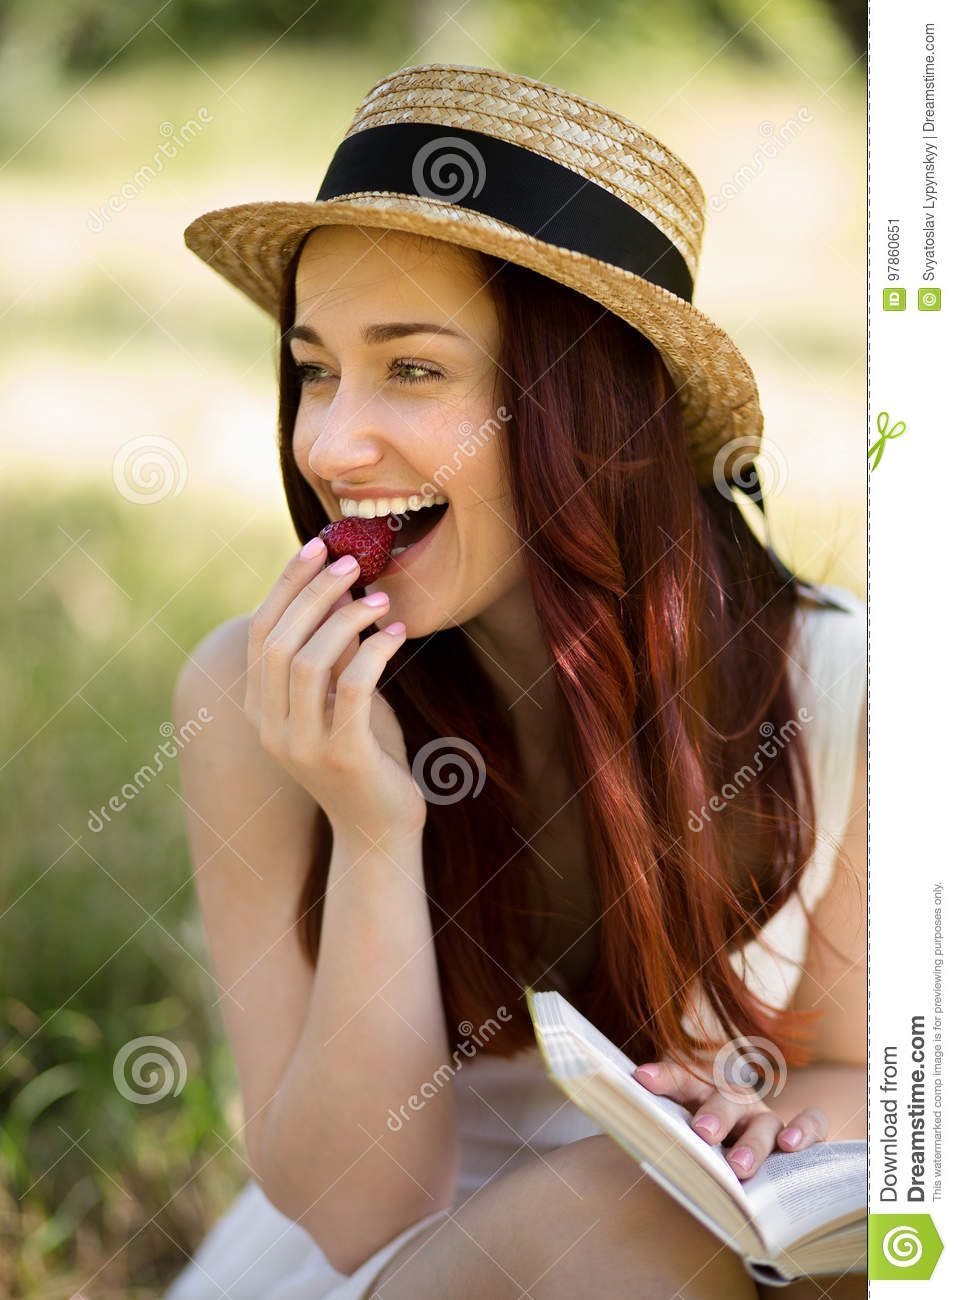 Close Up View Of Young Woman In Garden. Stock Image - Image of ...